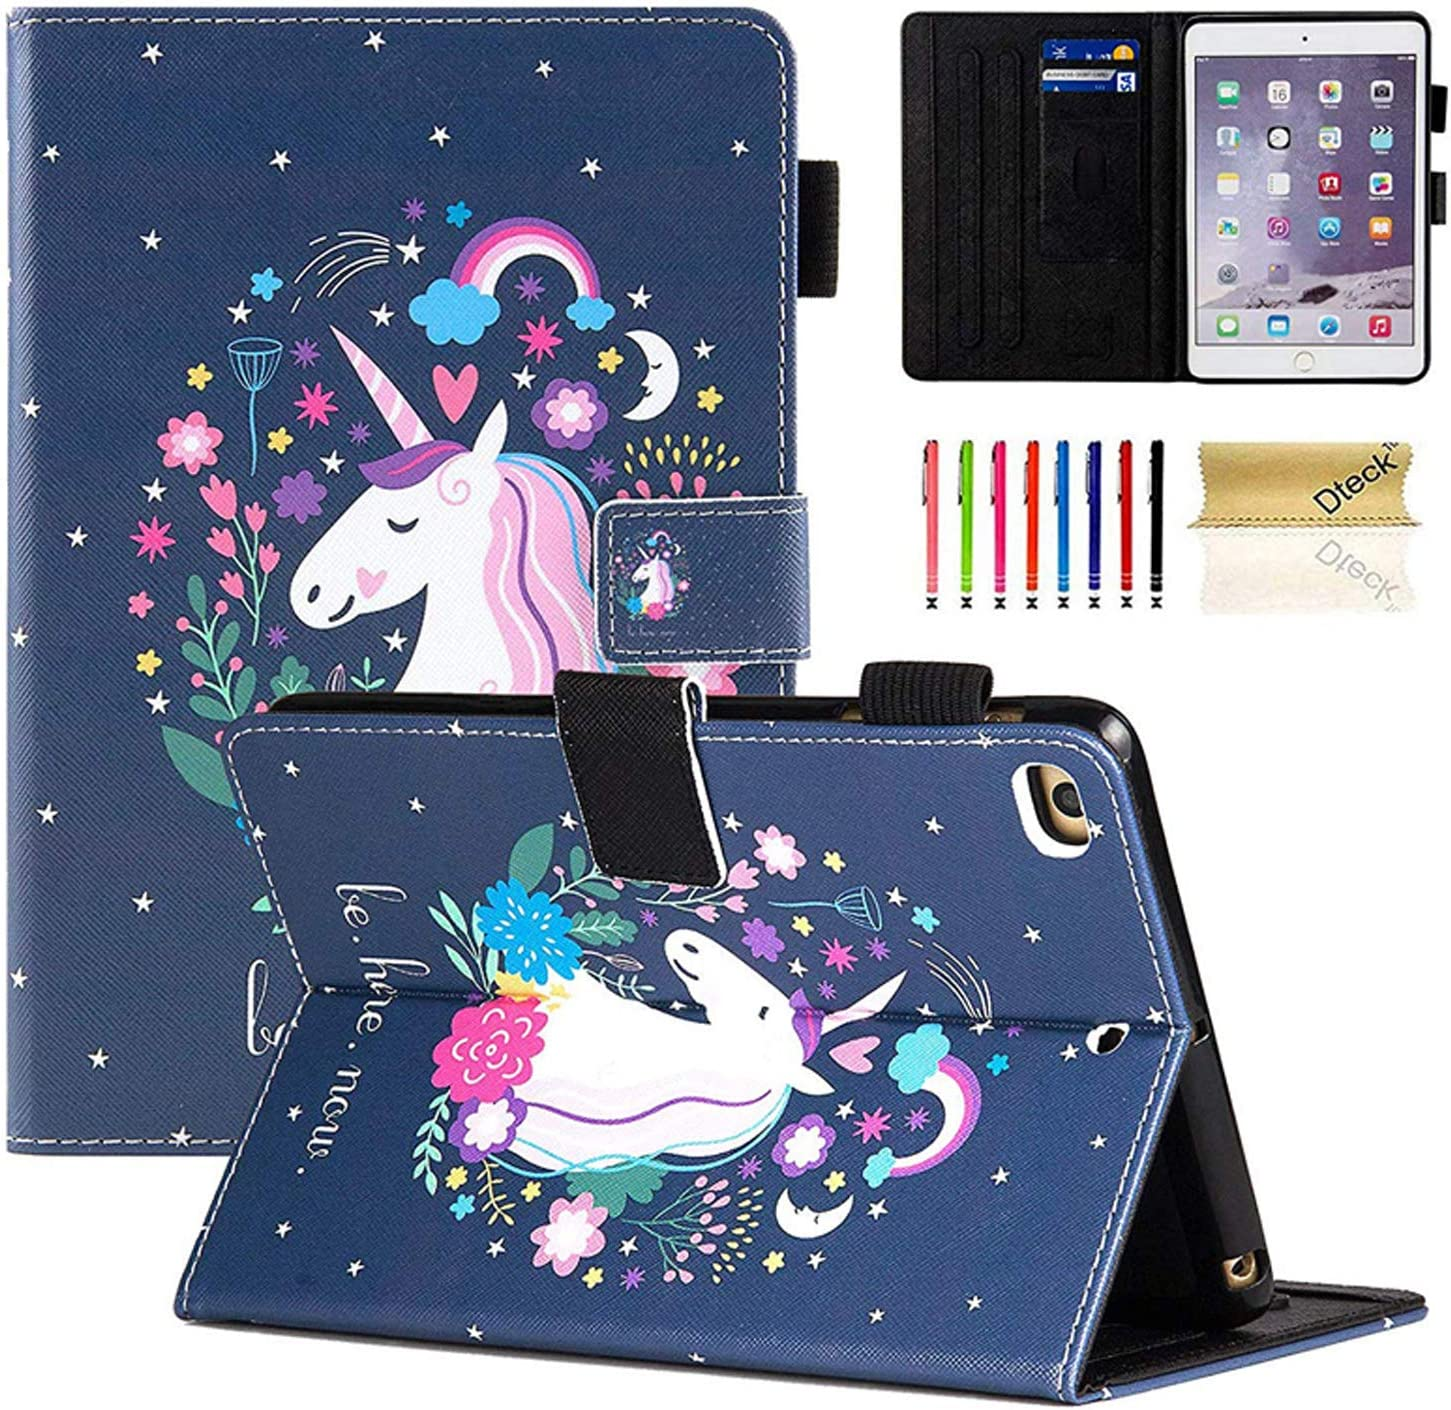 Dteck iPad Mini 1/2/3/4/5 Case - Slim Fit Premium PU Leather Multiple Viewing Folio Stand Cover with Auto Wake/Sleep Smart for Apple iPad Mini 2/Mini 3/Mini 4/Mini 5, Fashion Unicorn